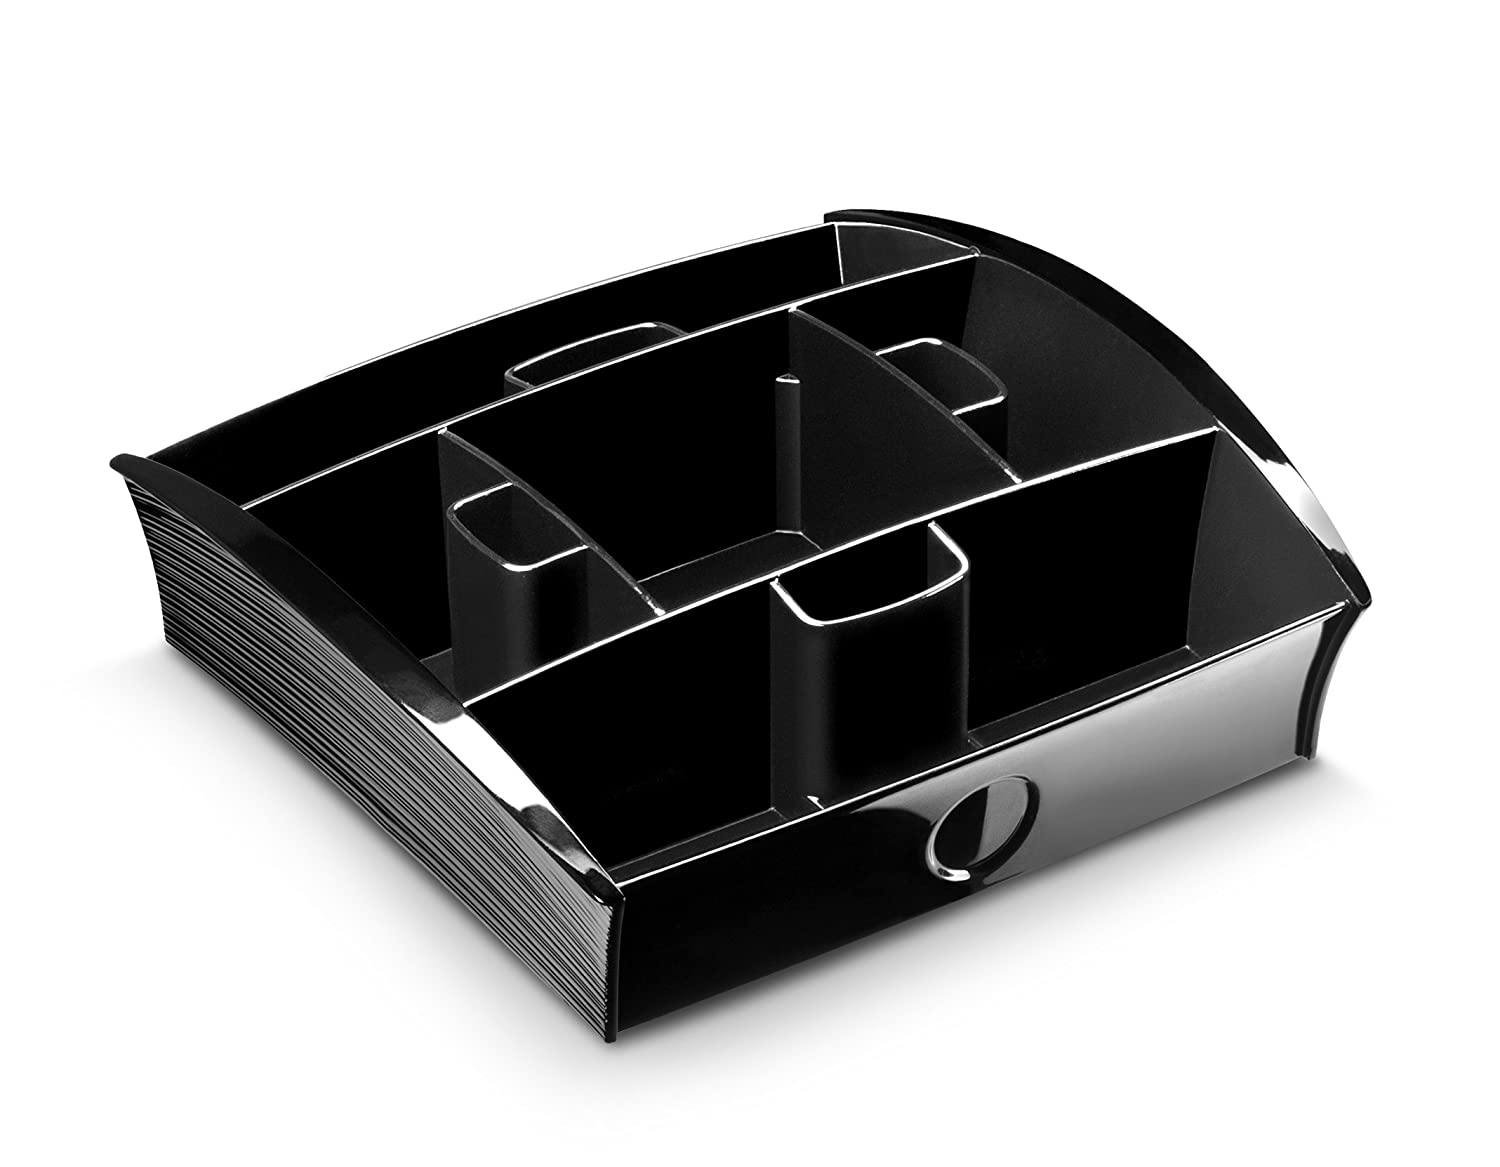 CEP Polystyrene Deluxe Distributor Tray, Black CEP Office Solutions 1013100011